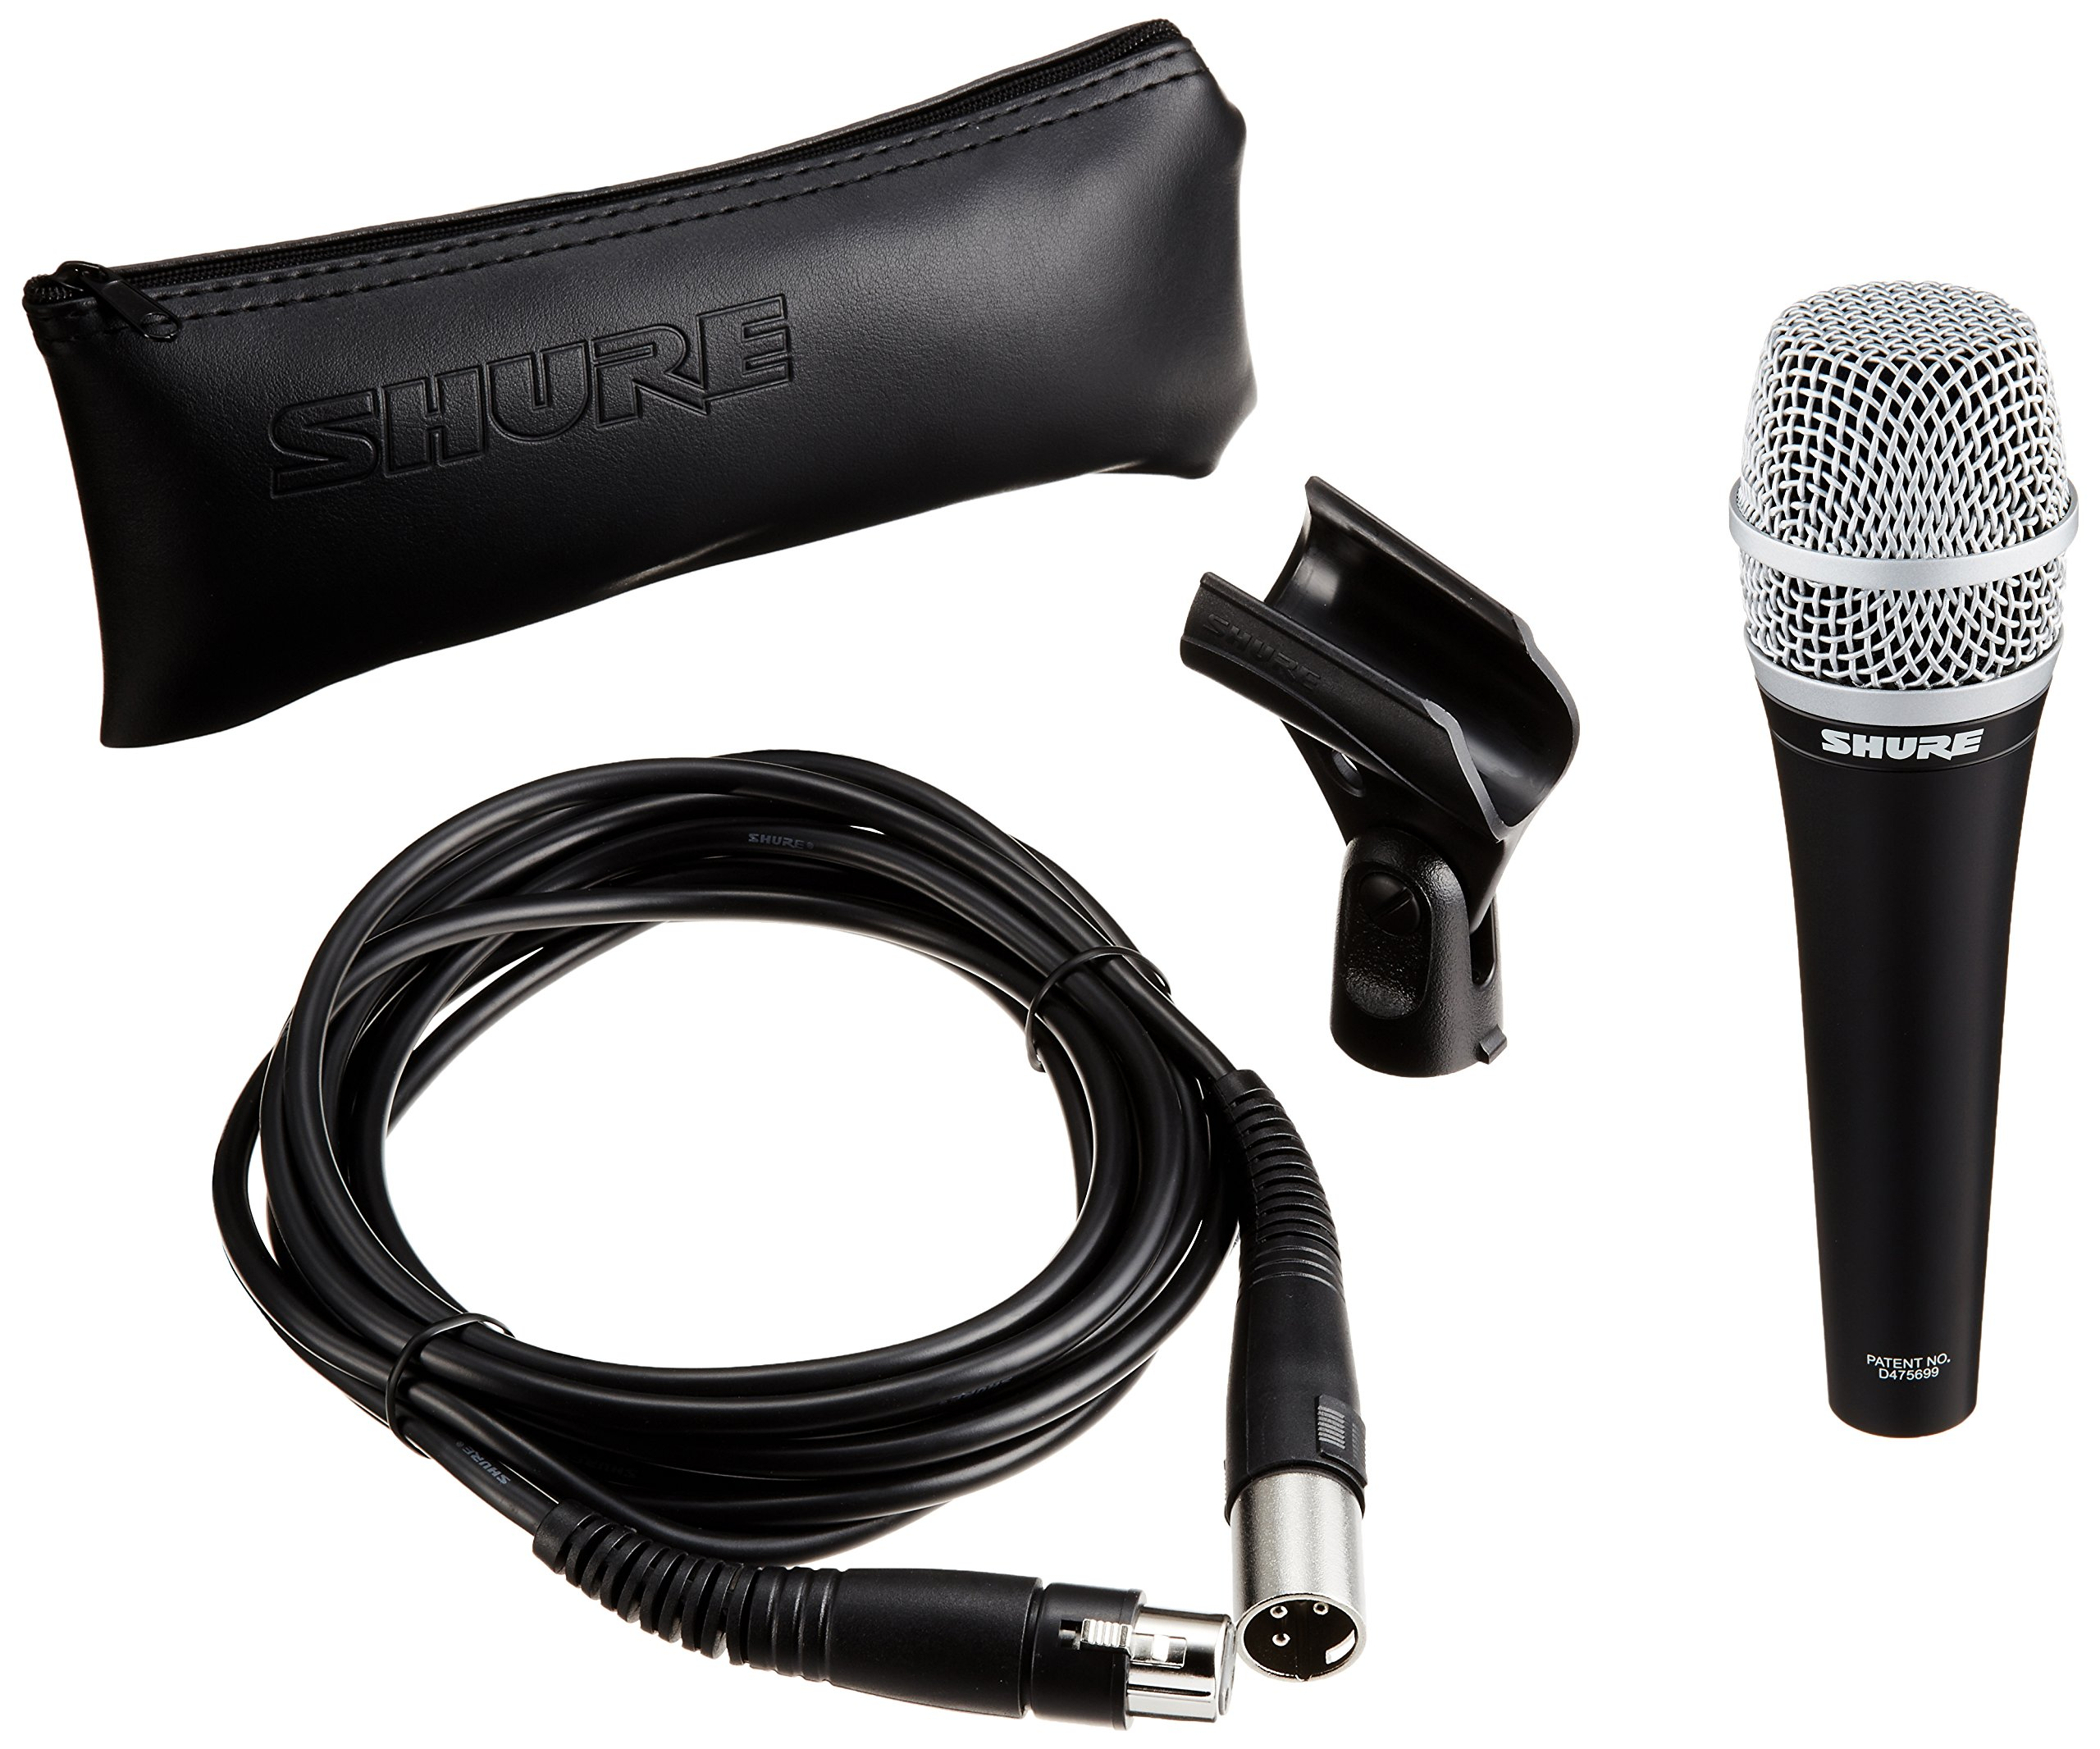 Shure PG57-XLR Cardioid Dynamic Instrument Microphone with XLR-to-XLR Cable